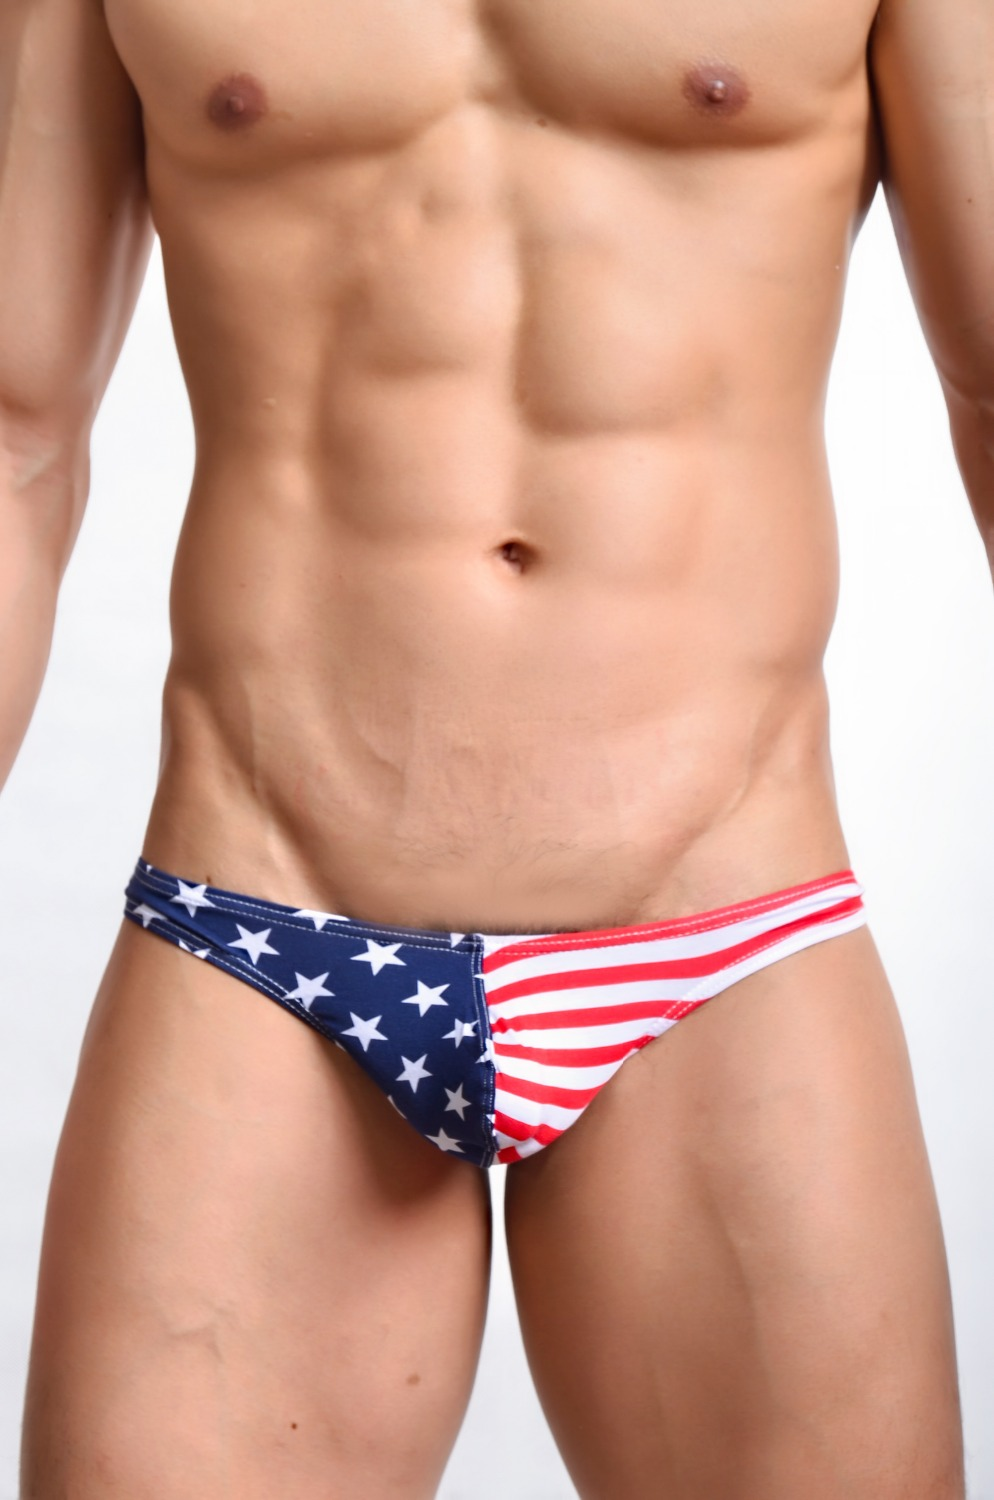 New <font><b>Sexy</b></font> Men Stripe Low Rise Thongs Men <font><b>Sexy</b></font> G-Strings & Thongs Underwear Penis Pouch <font><b>Gay</b></font> <font><b>Lingerie</b></font> USA Flag FX1008 image